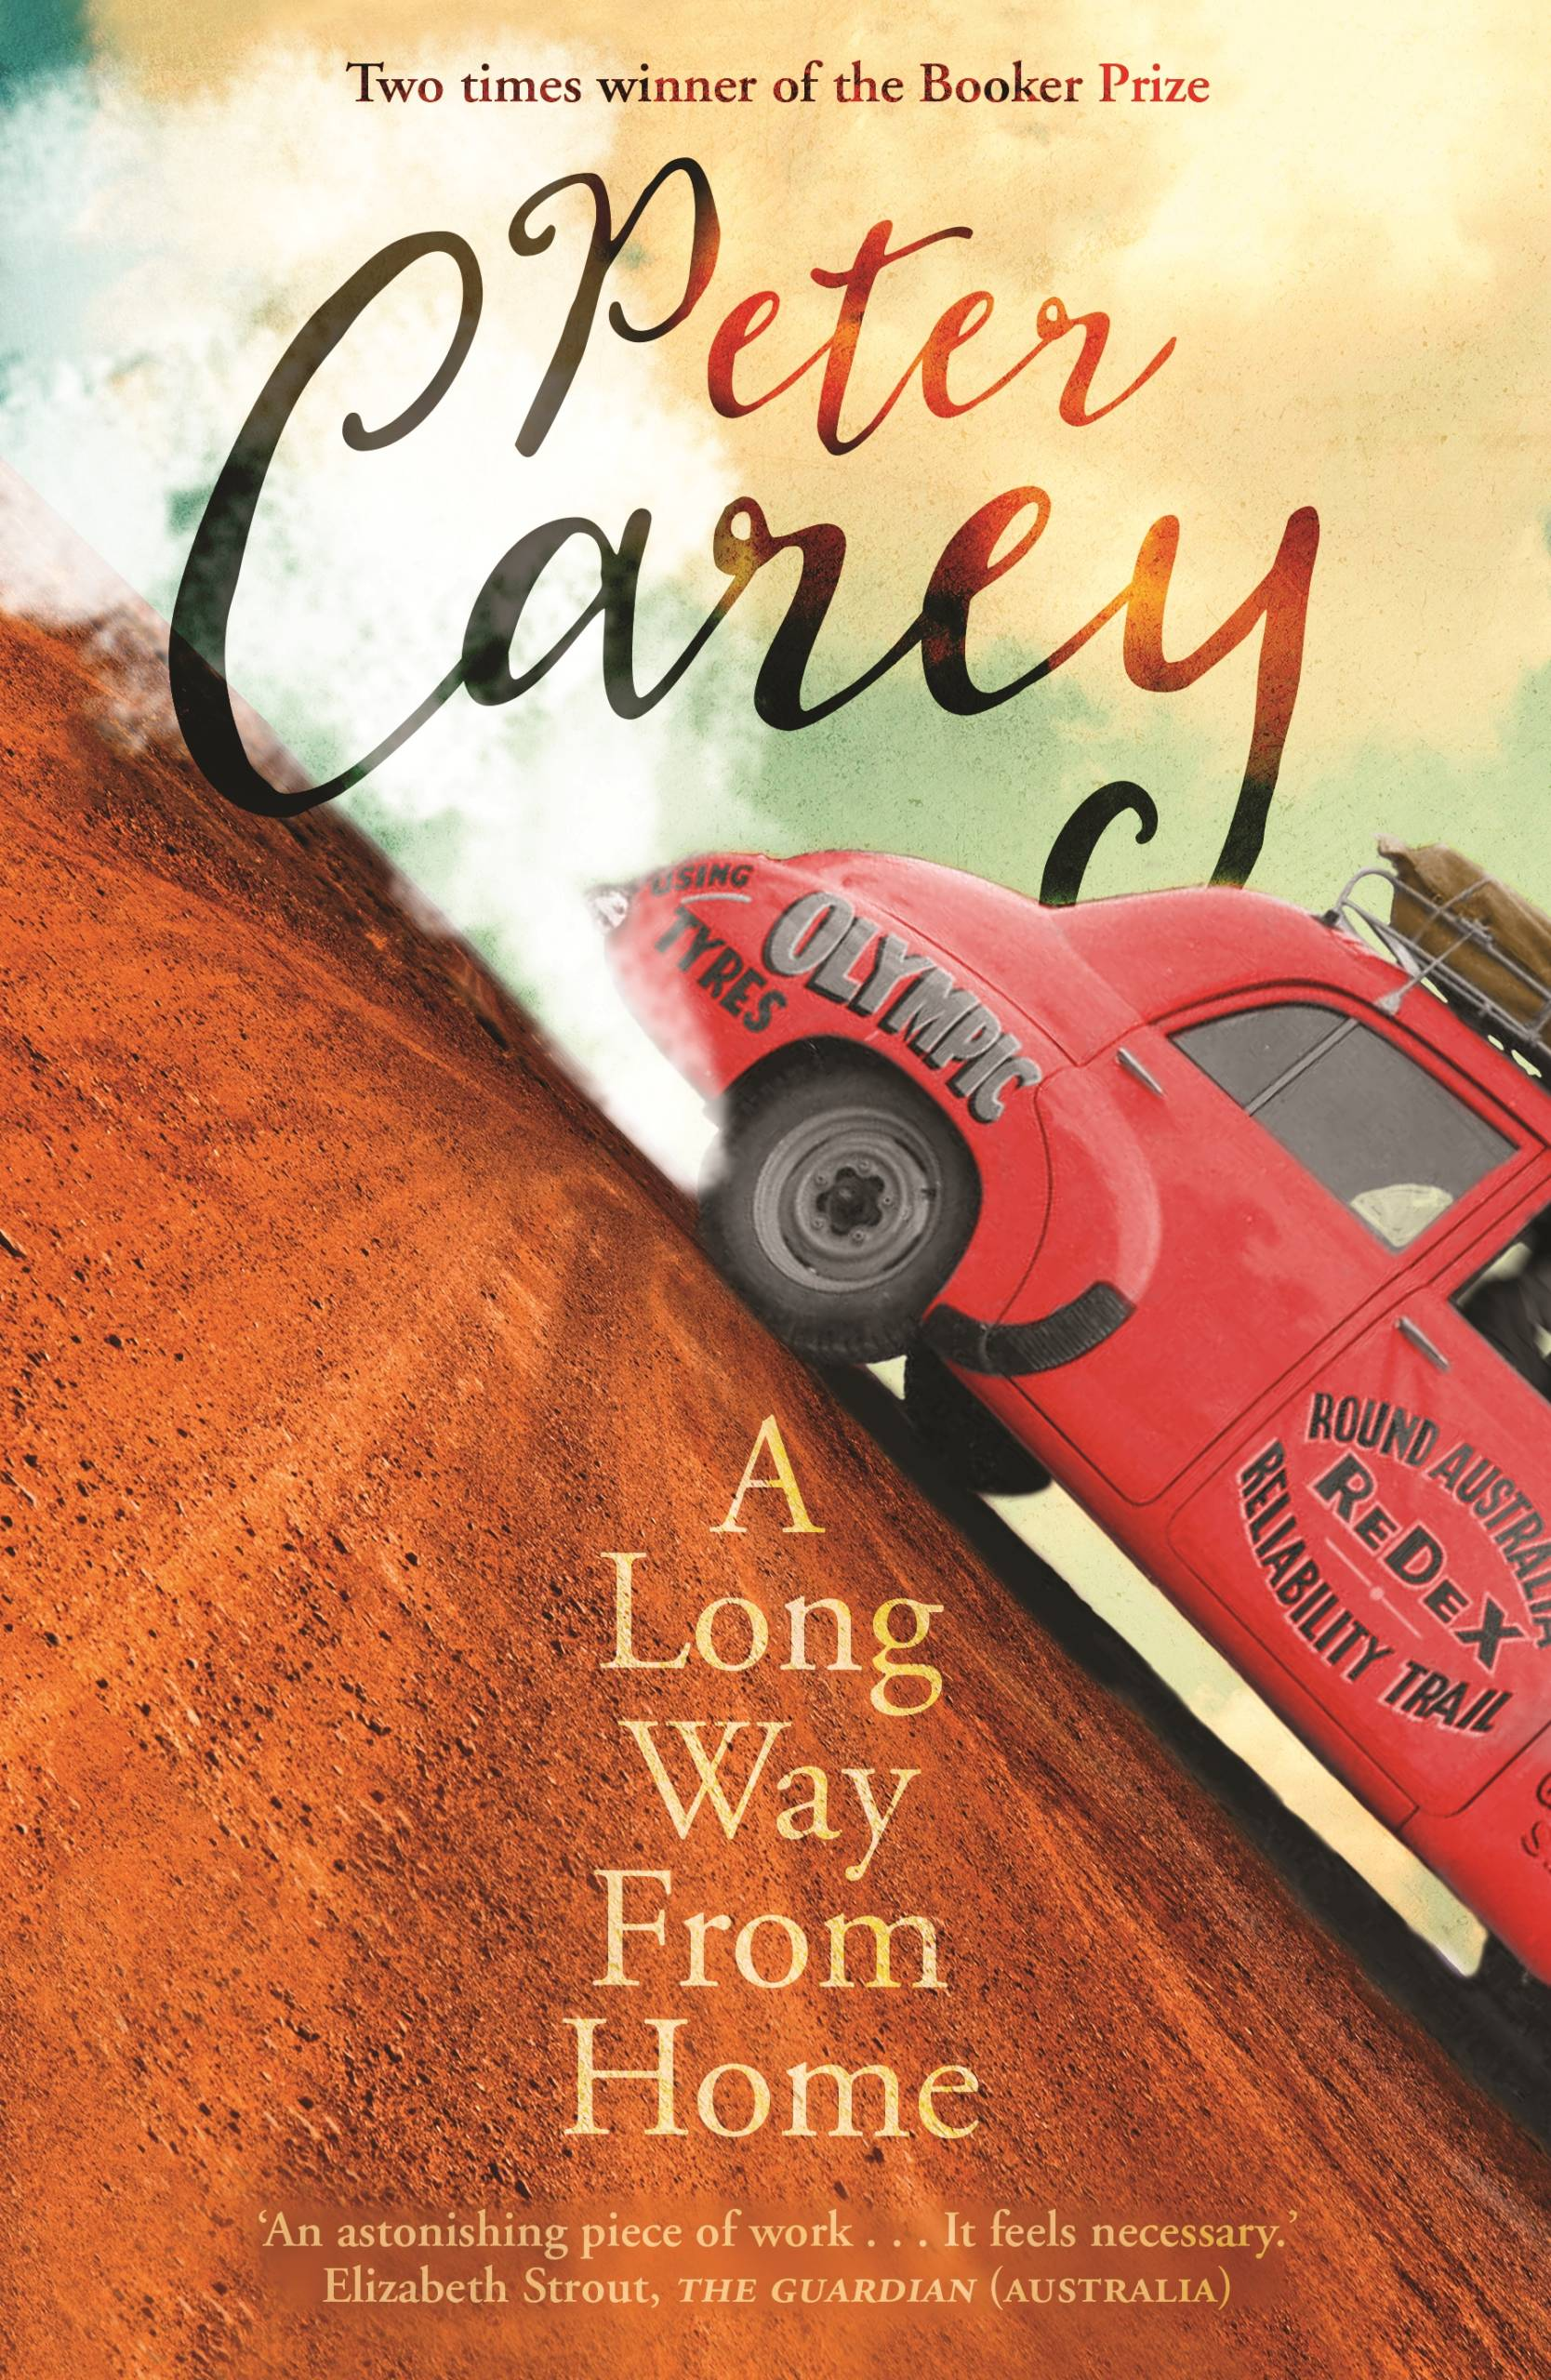 Long Way from Home, A by Peter Carey, ISBN: 9780143790389